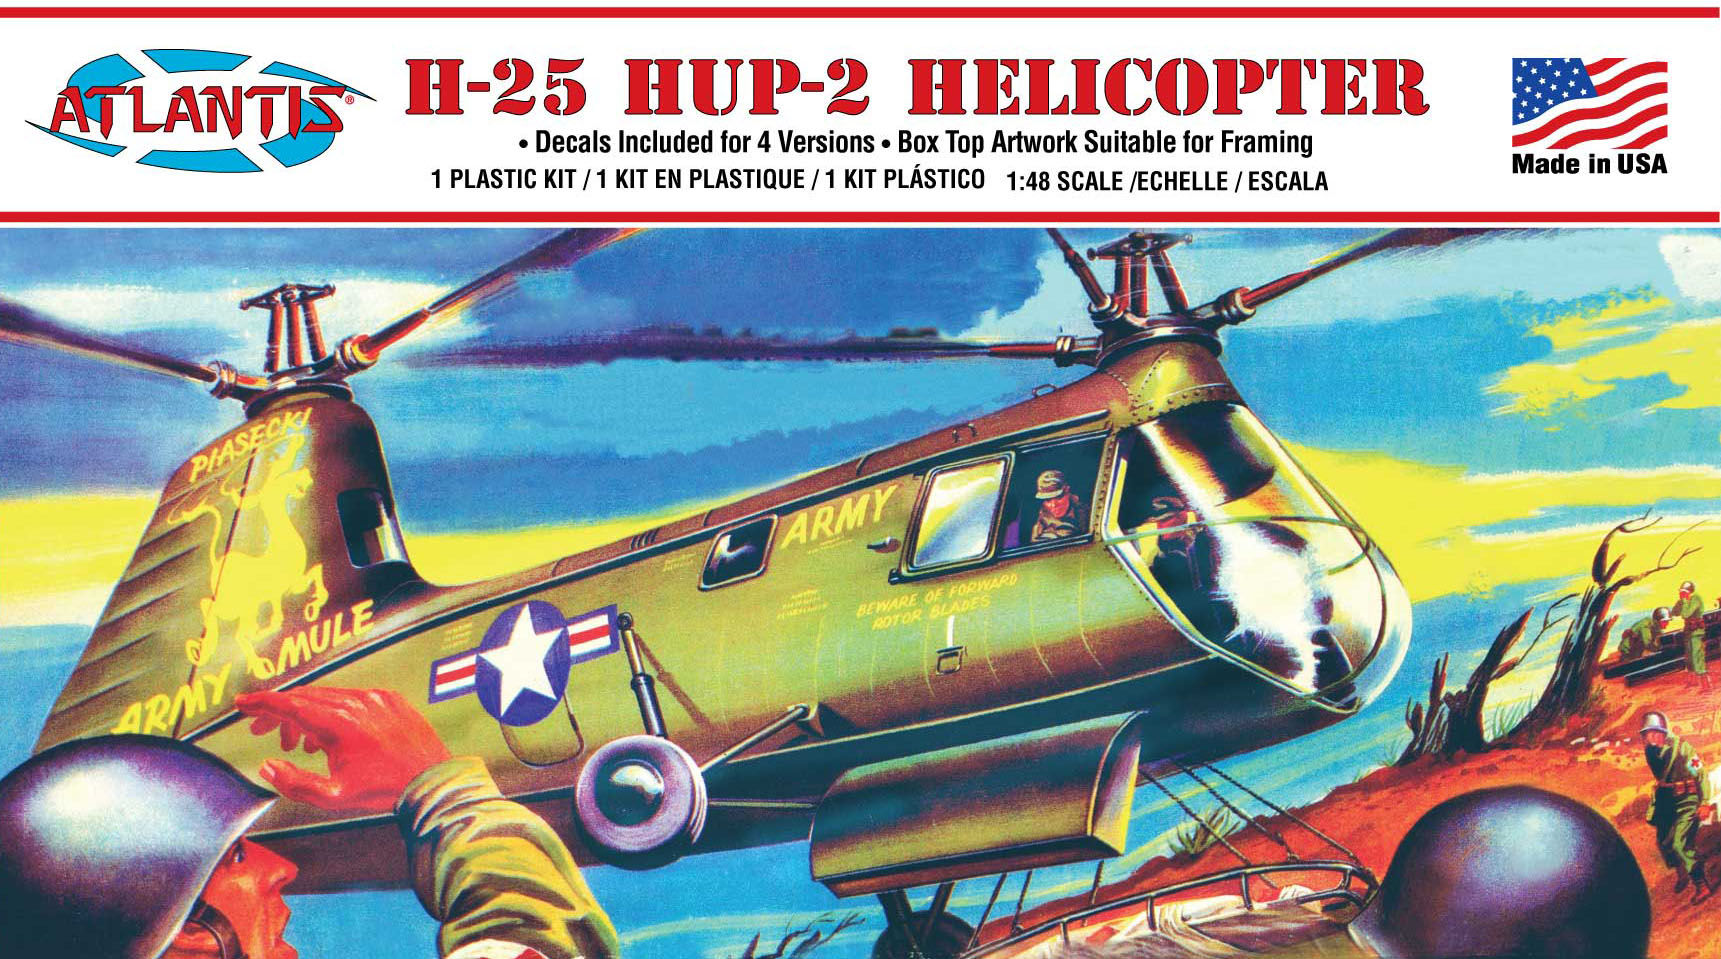 Atlantis H-25 Army Mule HUP-2 Helicopter 1/48